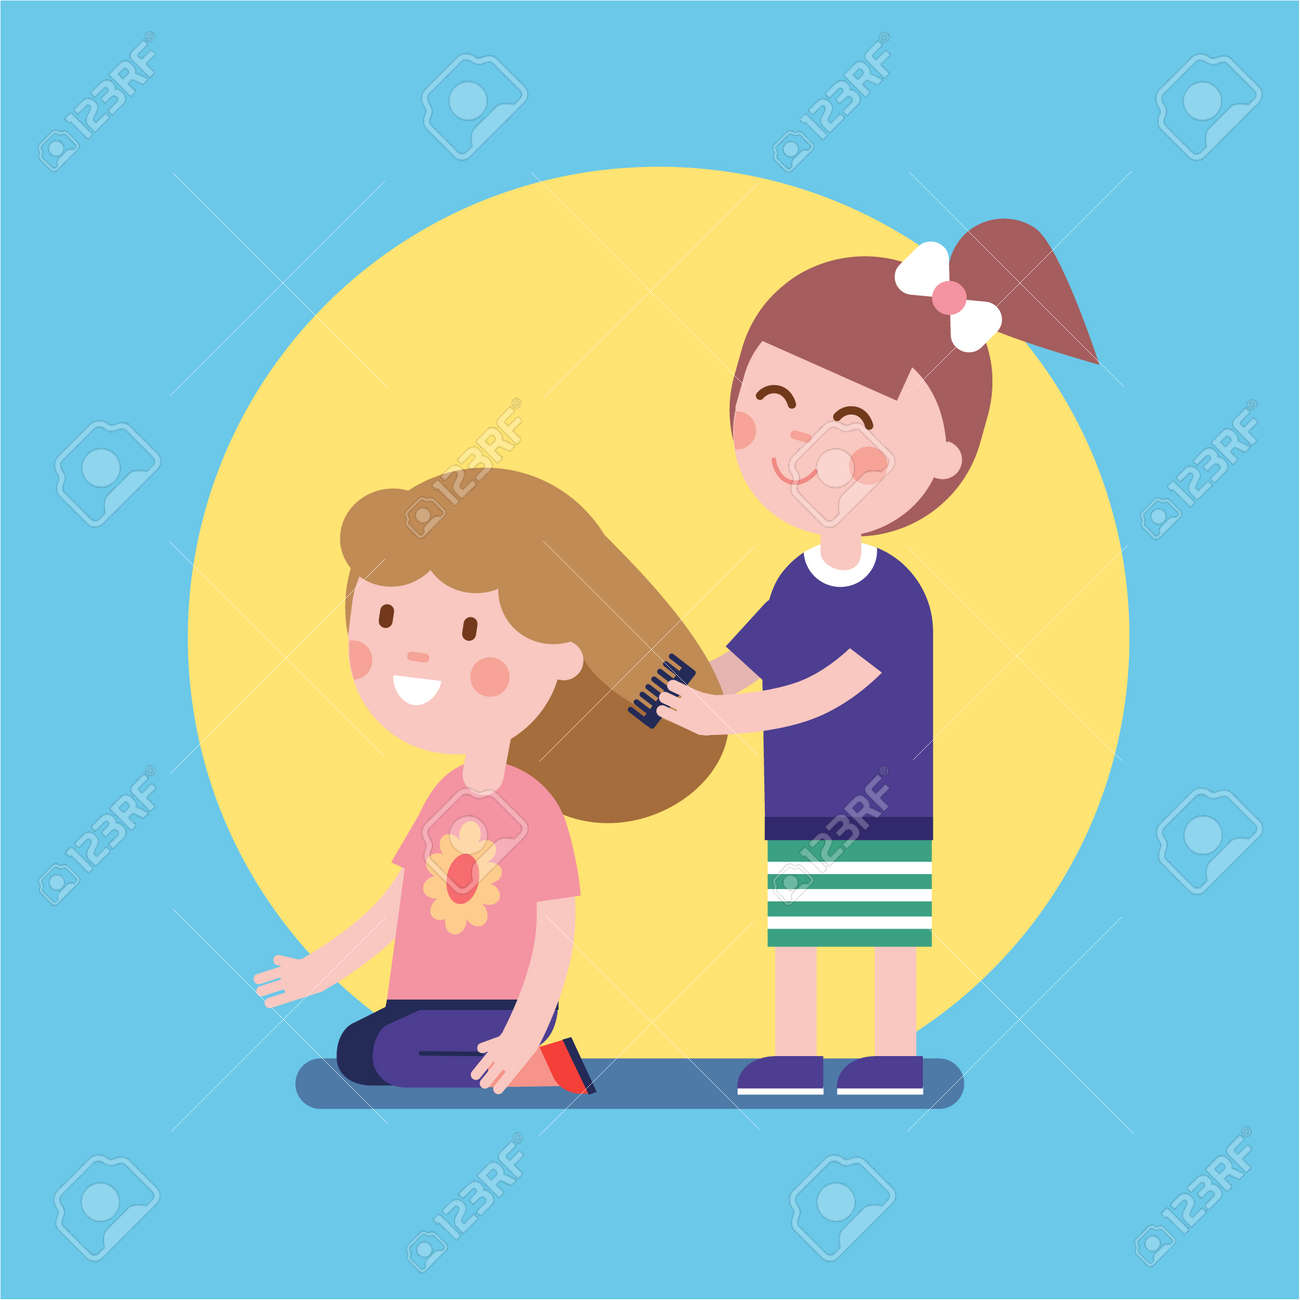 Girls Playing Hair Salon Game Kids Brushing With A Comb Modern Flat Vector